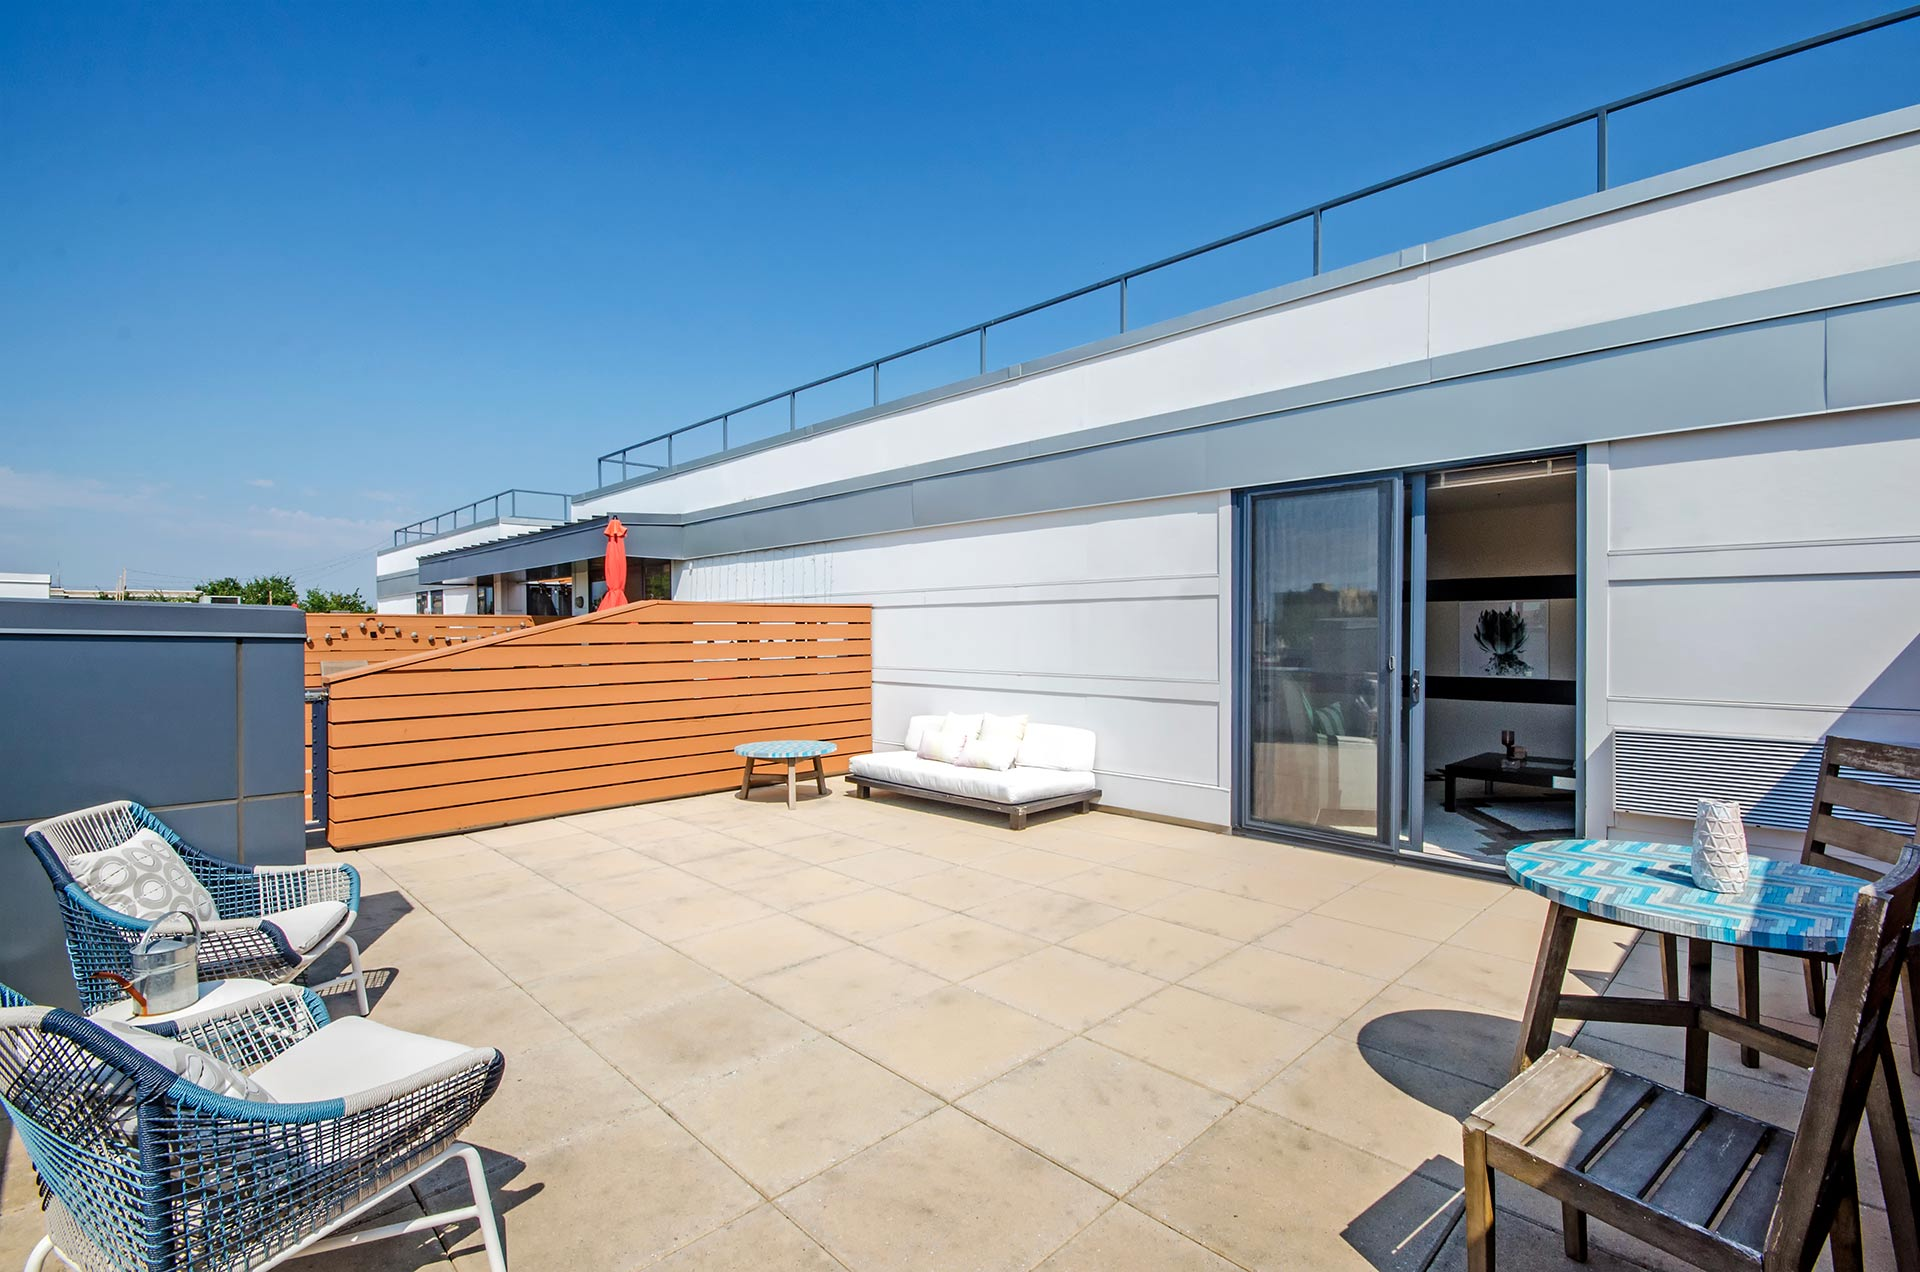 Expansive shot of outdoor furniture on private roof terrace with sliding doors open to apartment loft space inside